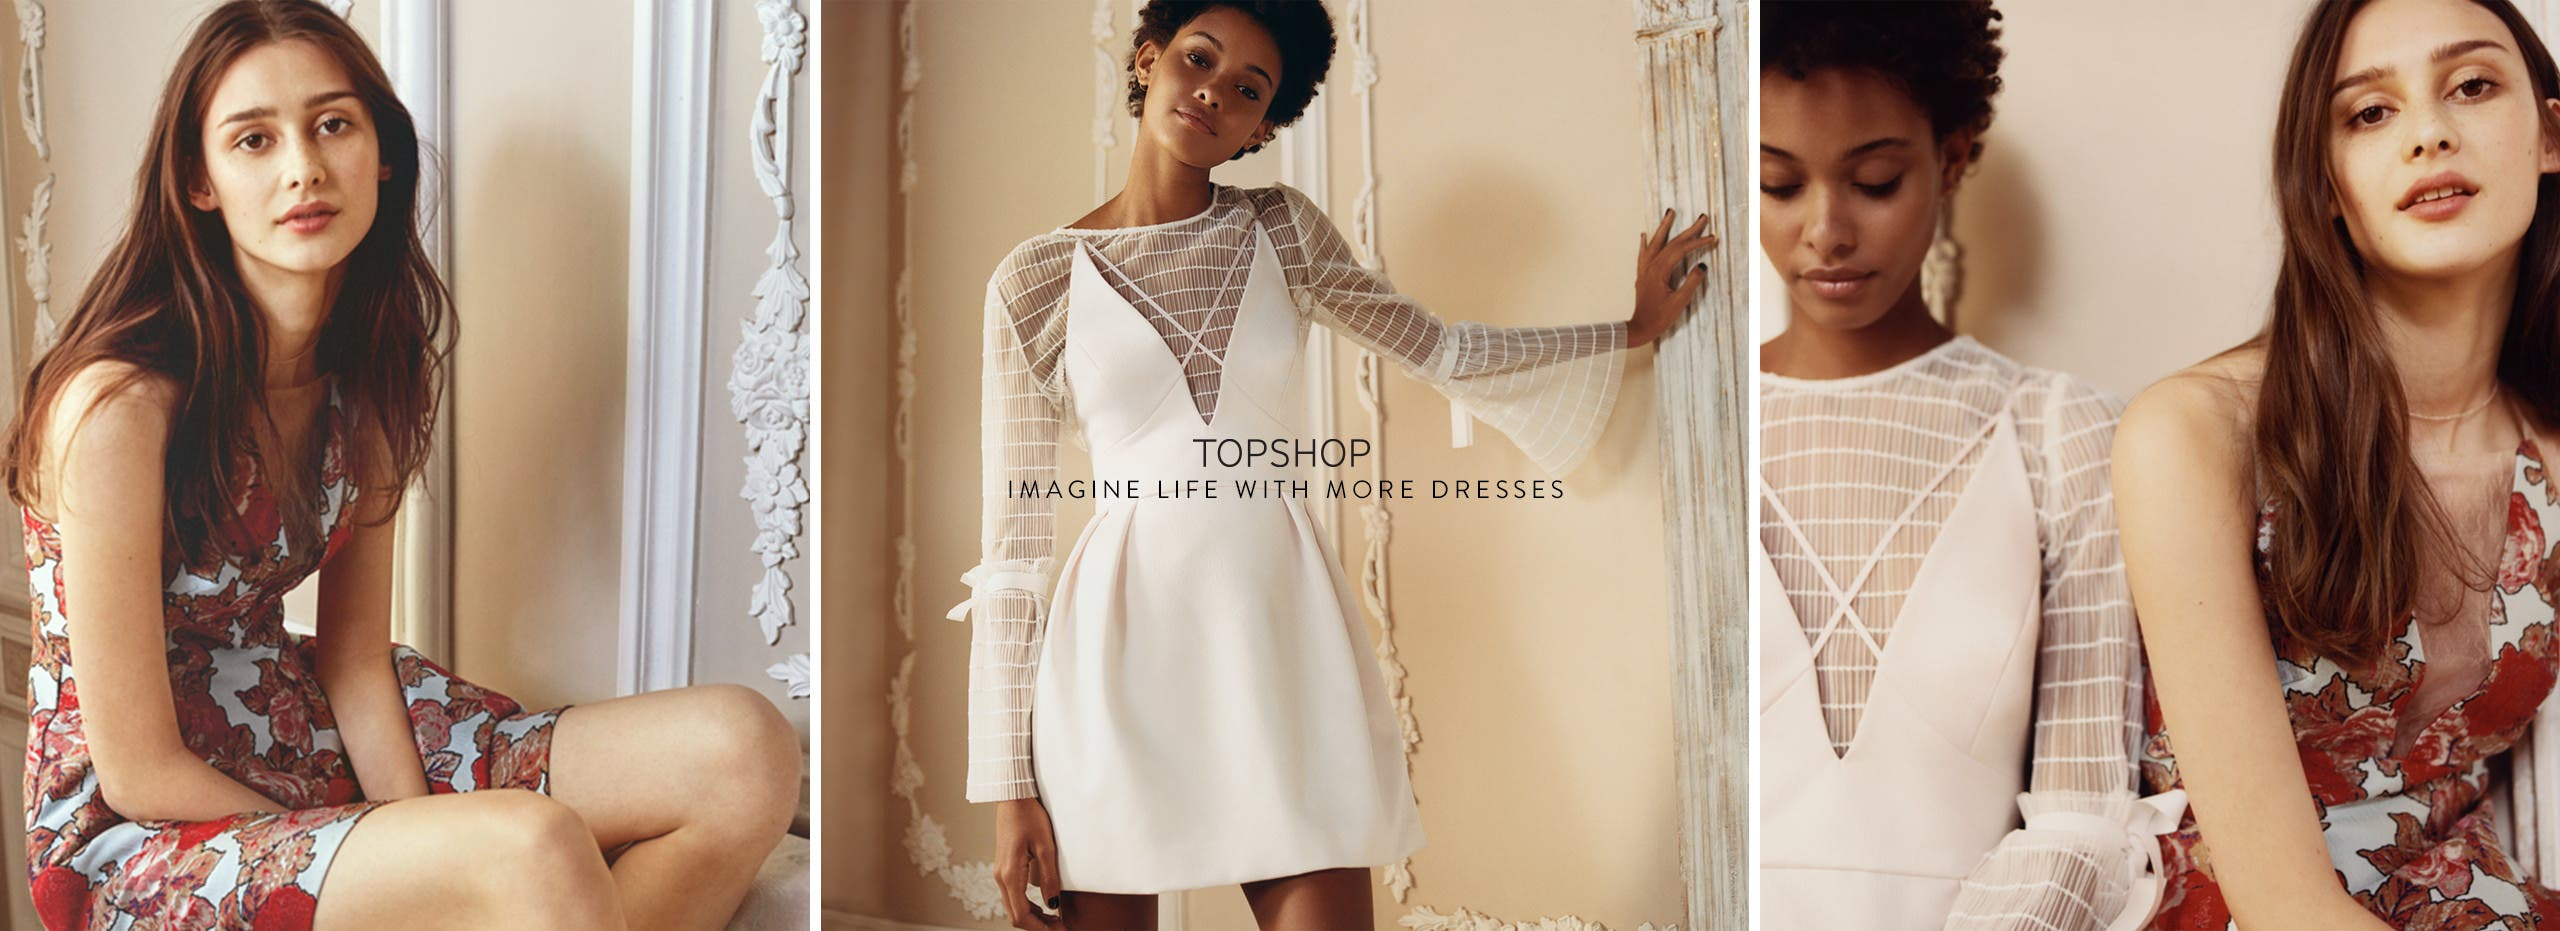 Imagine life with more Topshop dresses.